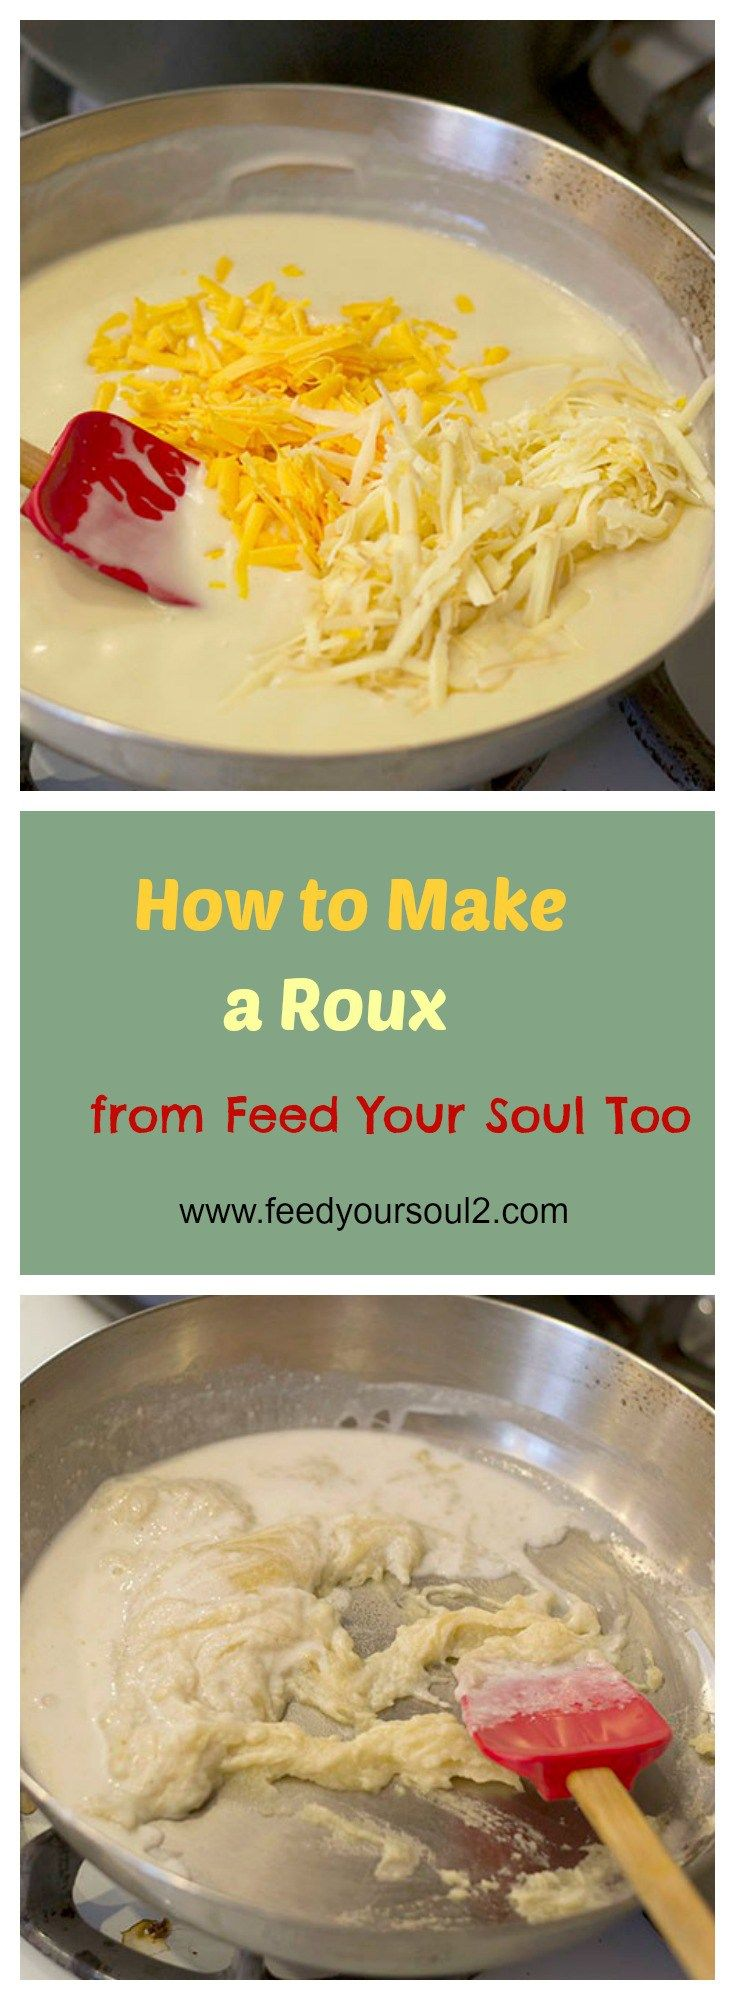 How to Make a Roux and Cheese Sauce from Feed Your Soul Too